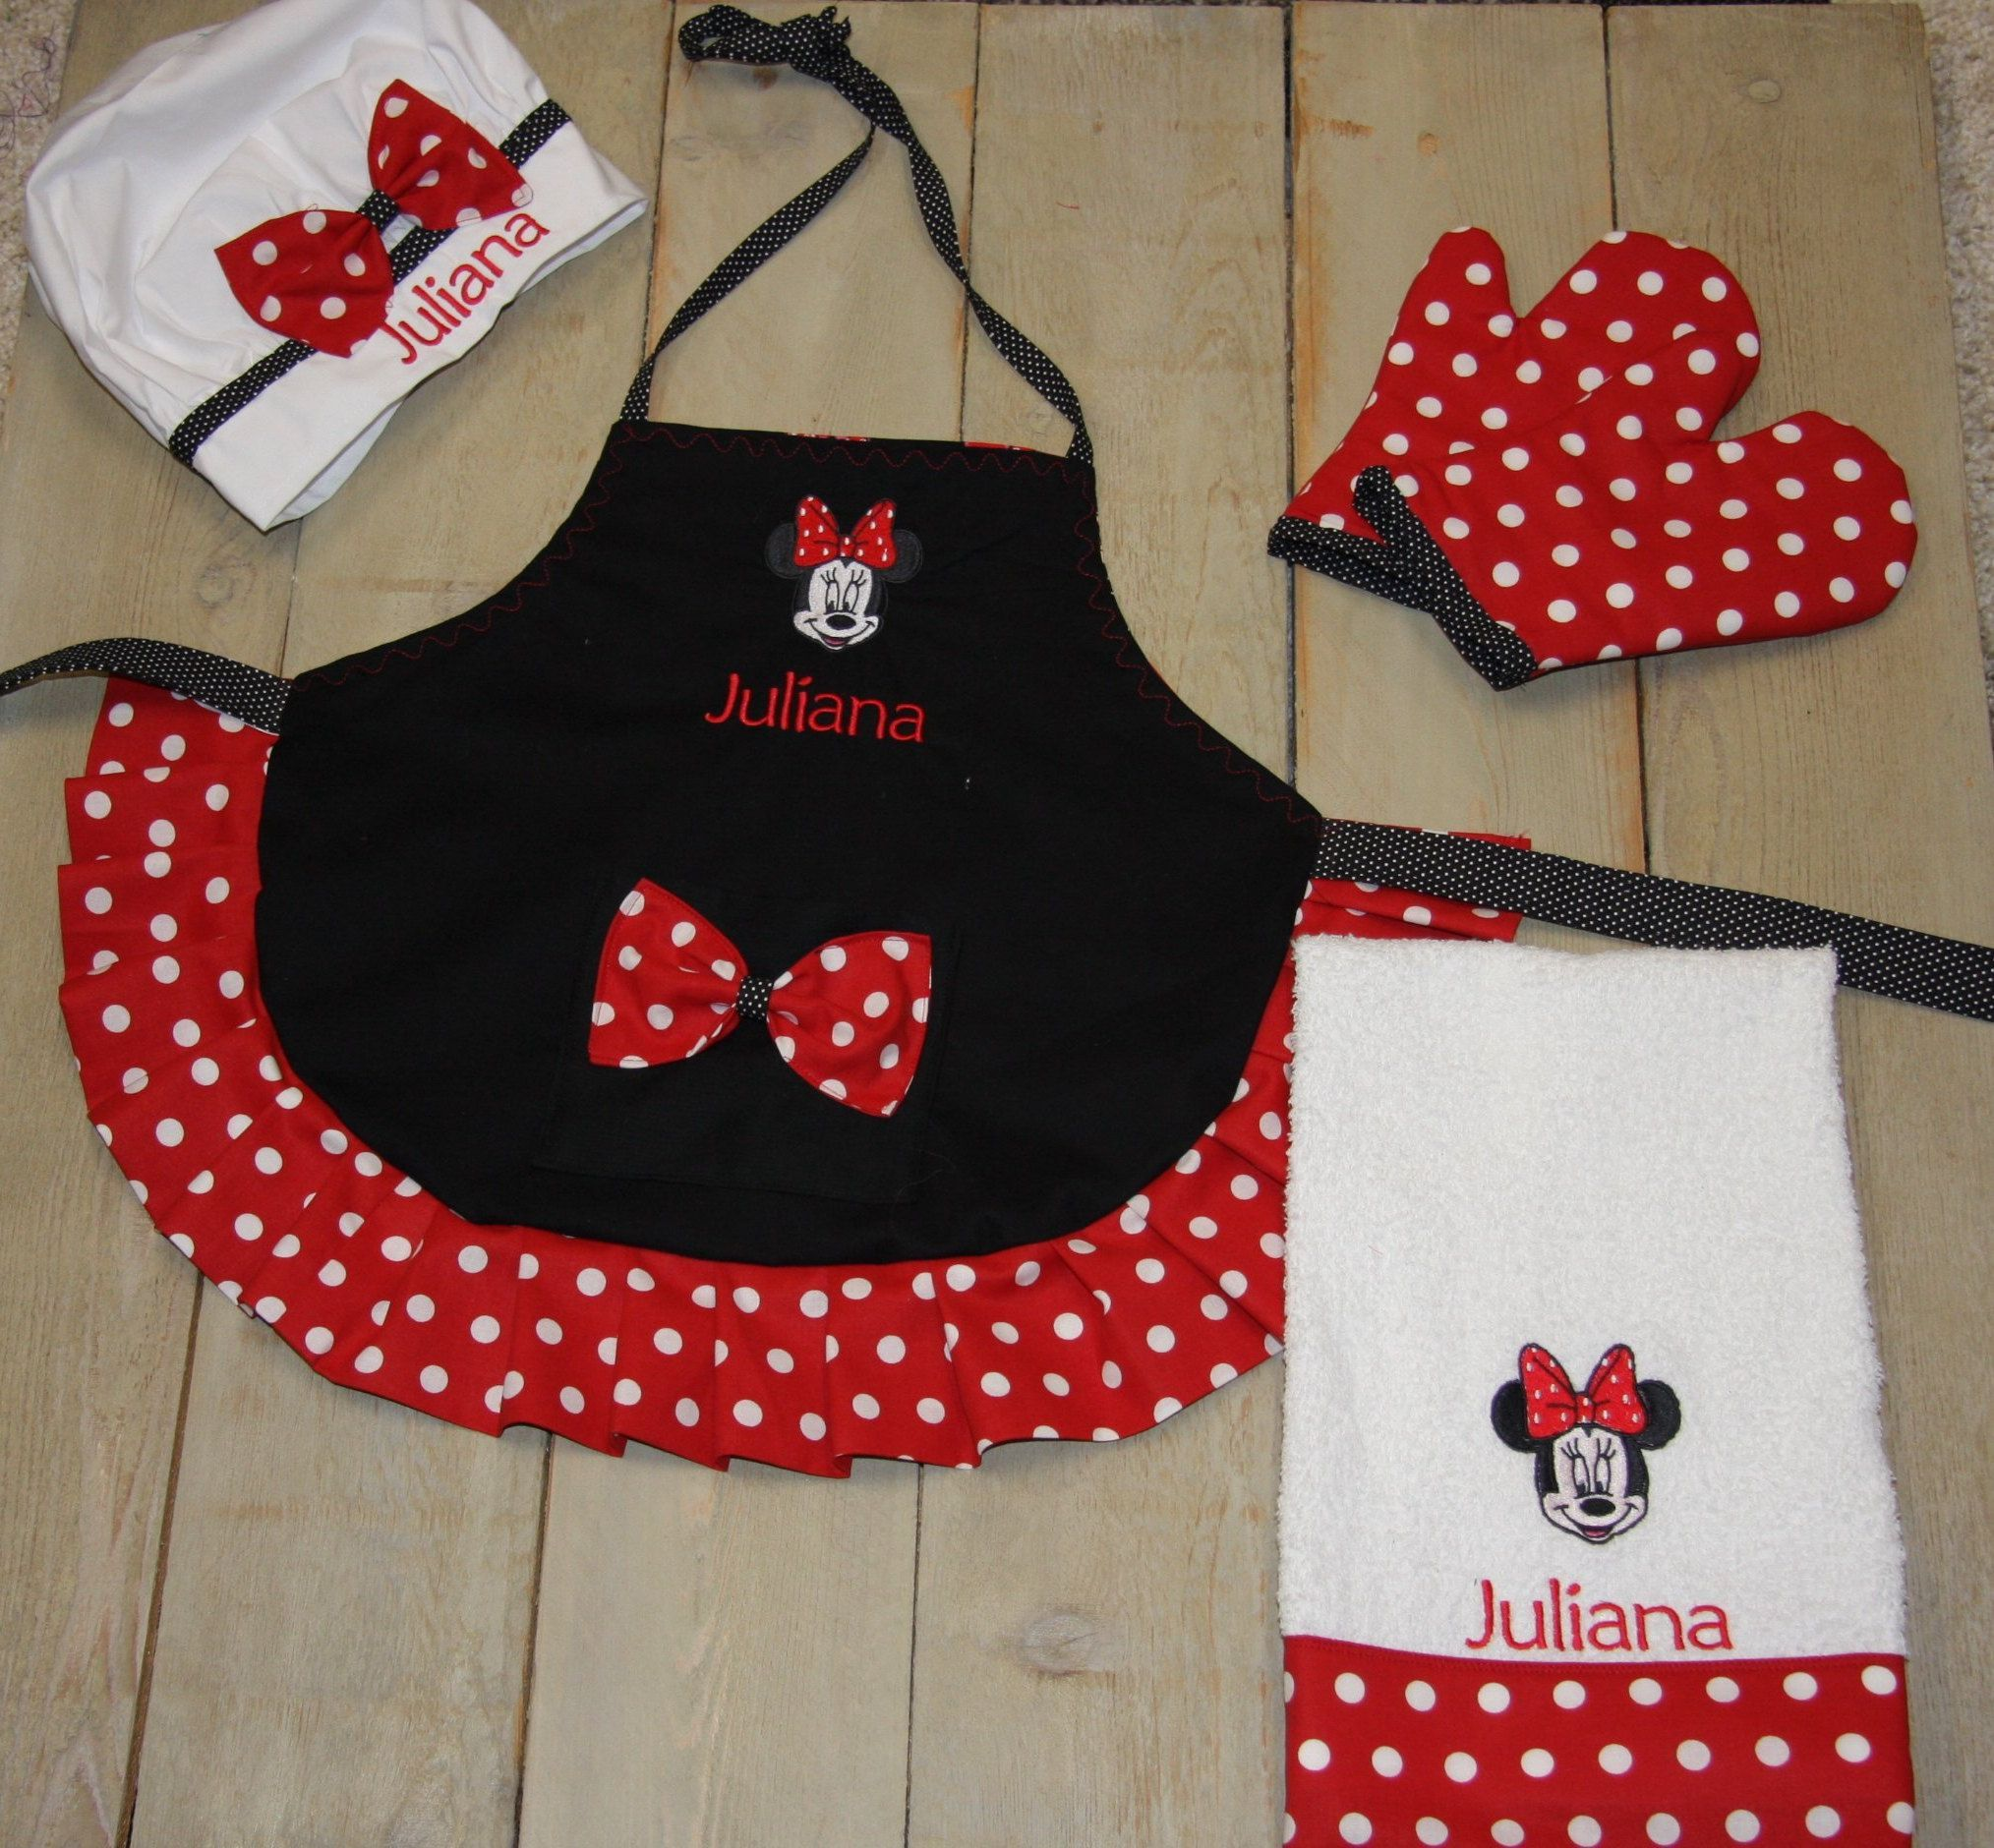 Custom Apron Child Apron Personalized Apron Minnie Apron matching oven mitts Personalized Mickey Mouse Apron birthday gift little girl apron